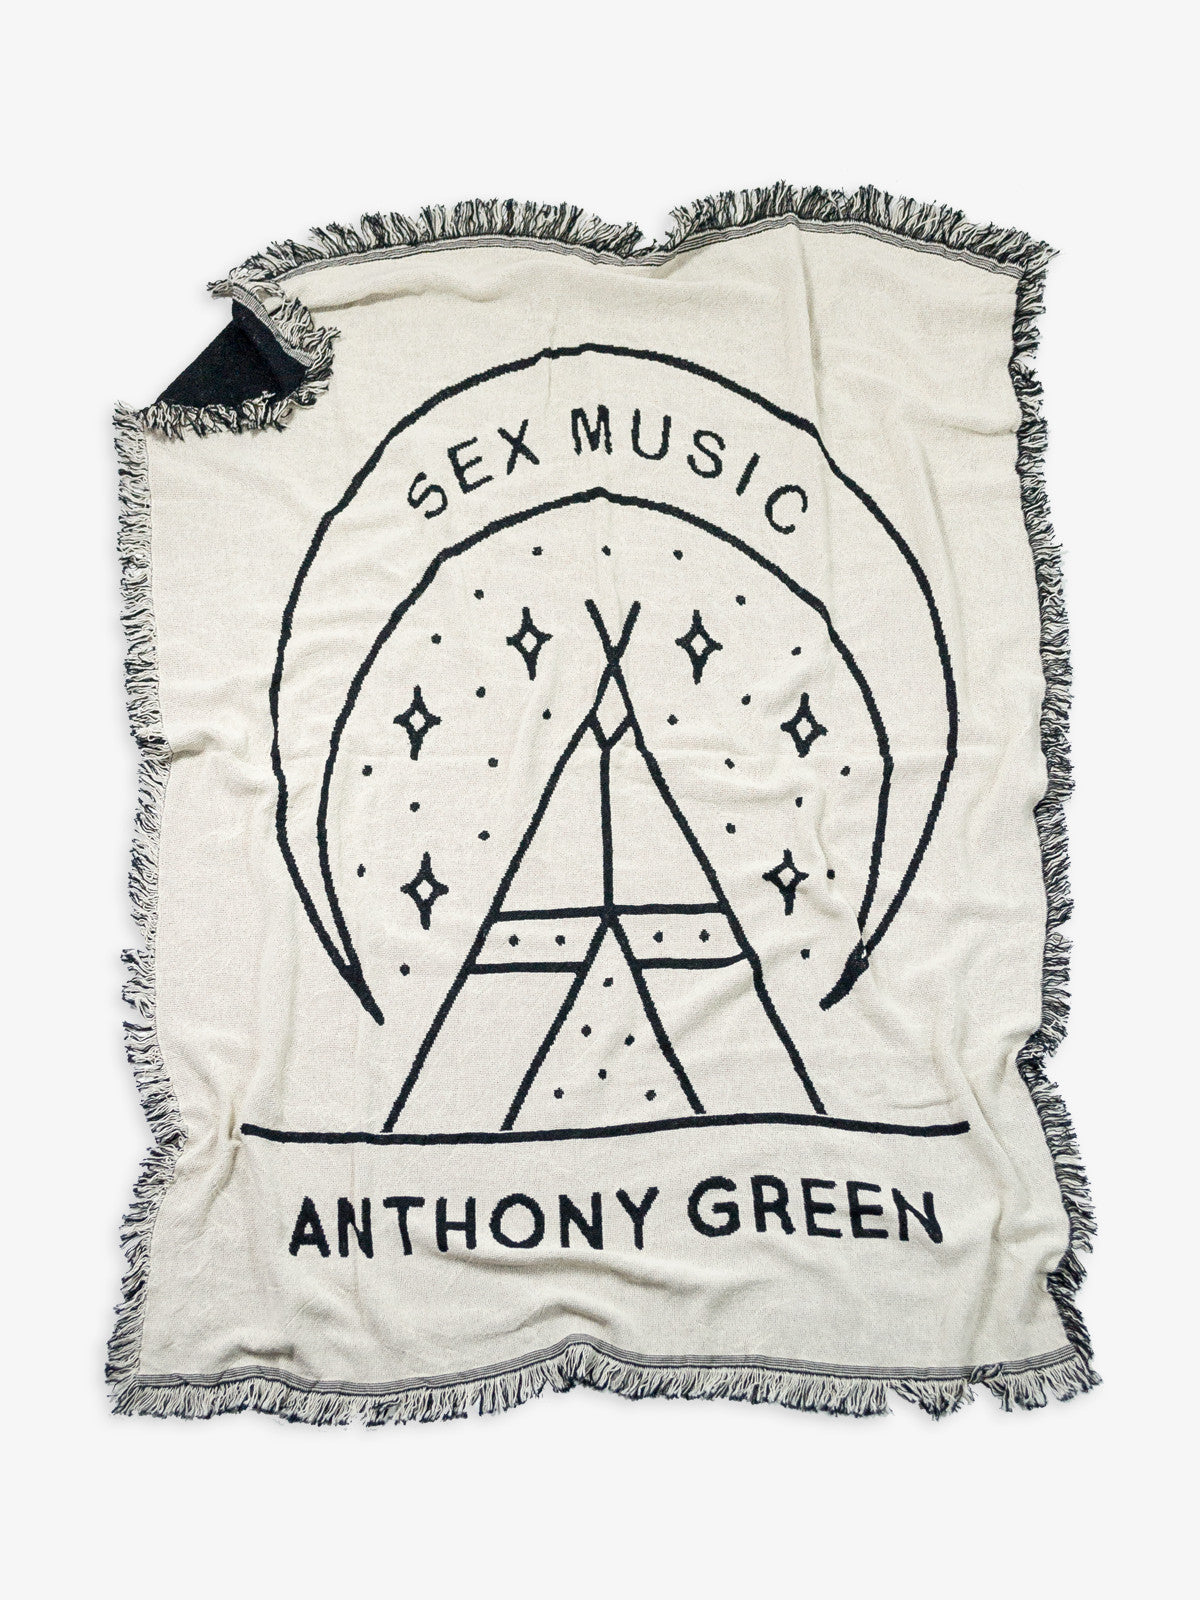 Anthony Green - Sex Music Woven Blanket - Merch Limited